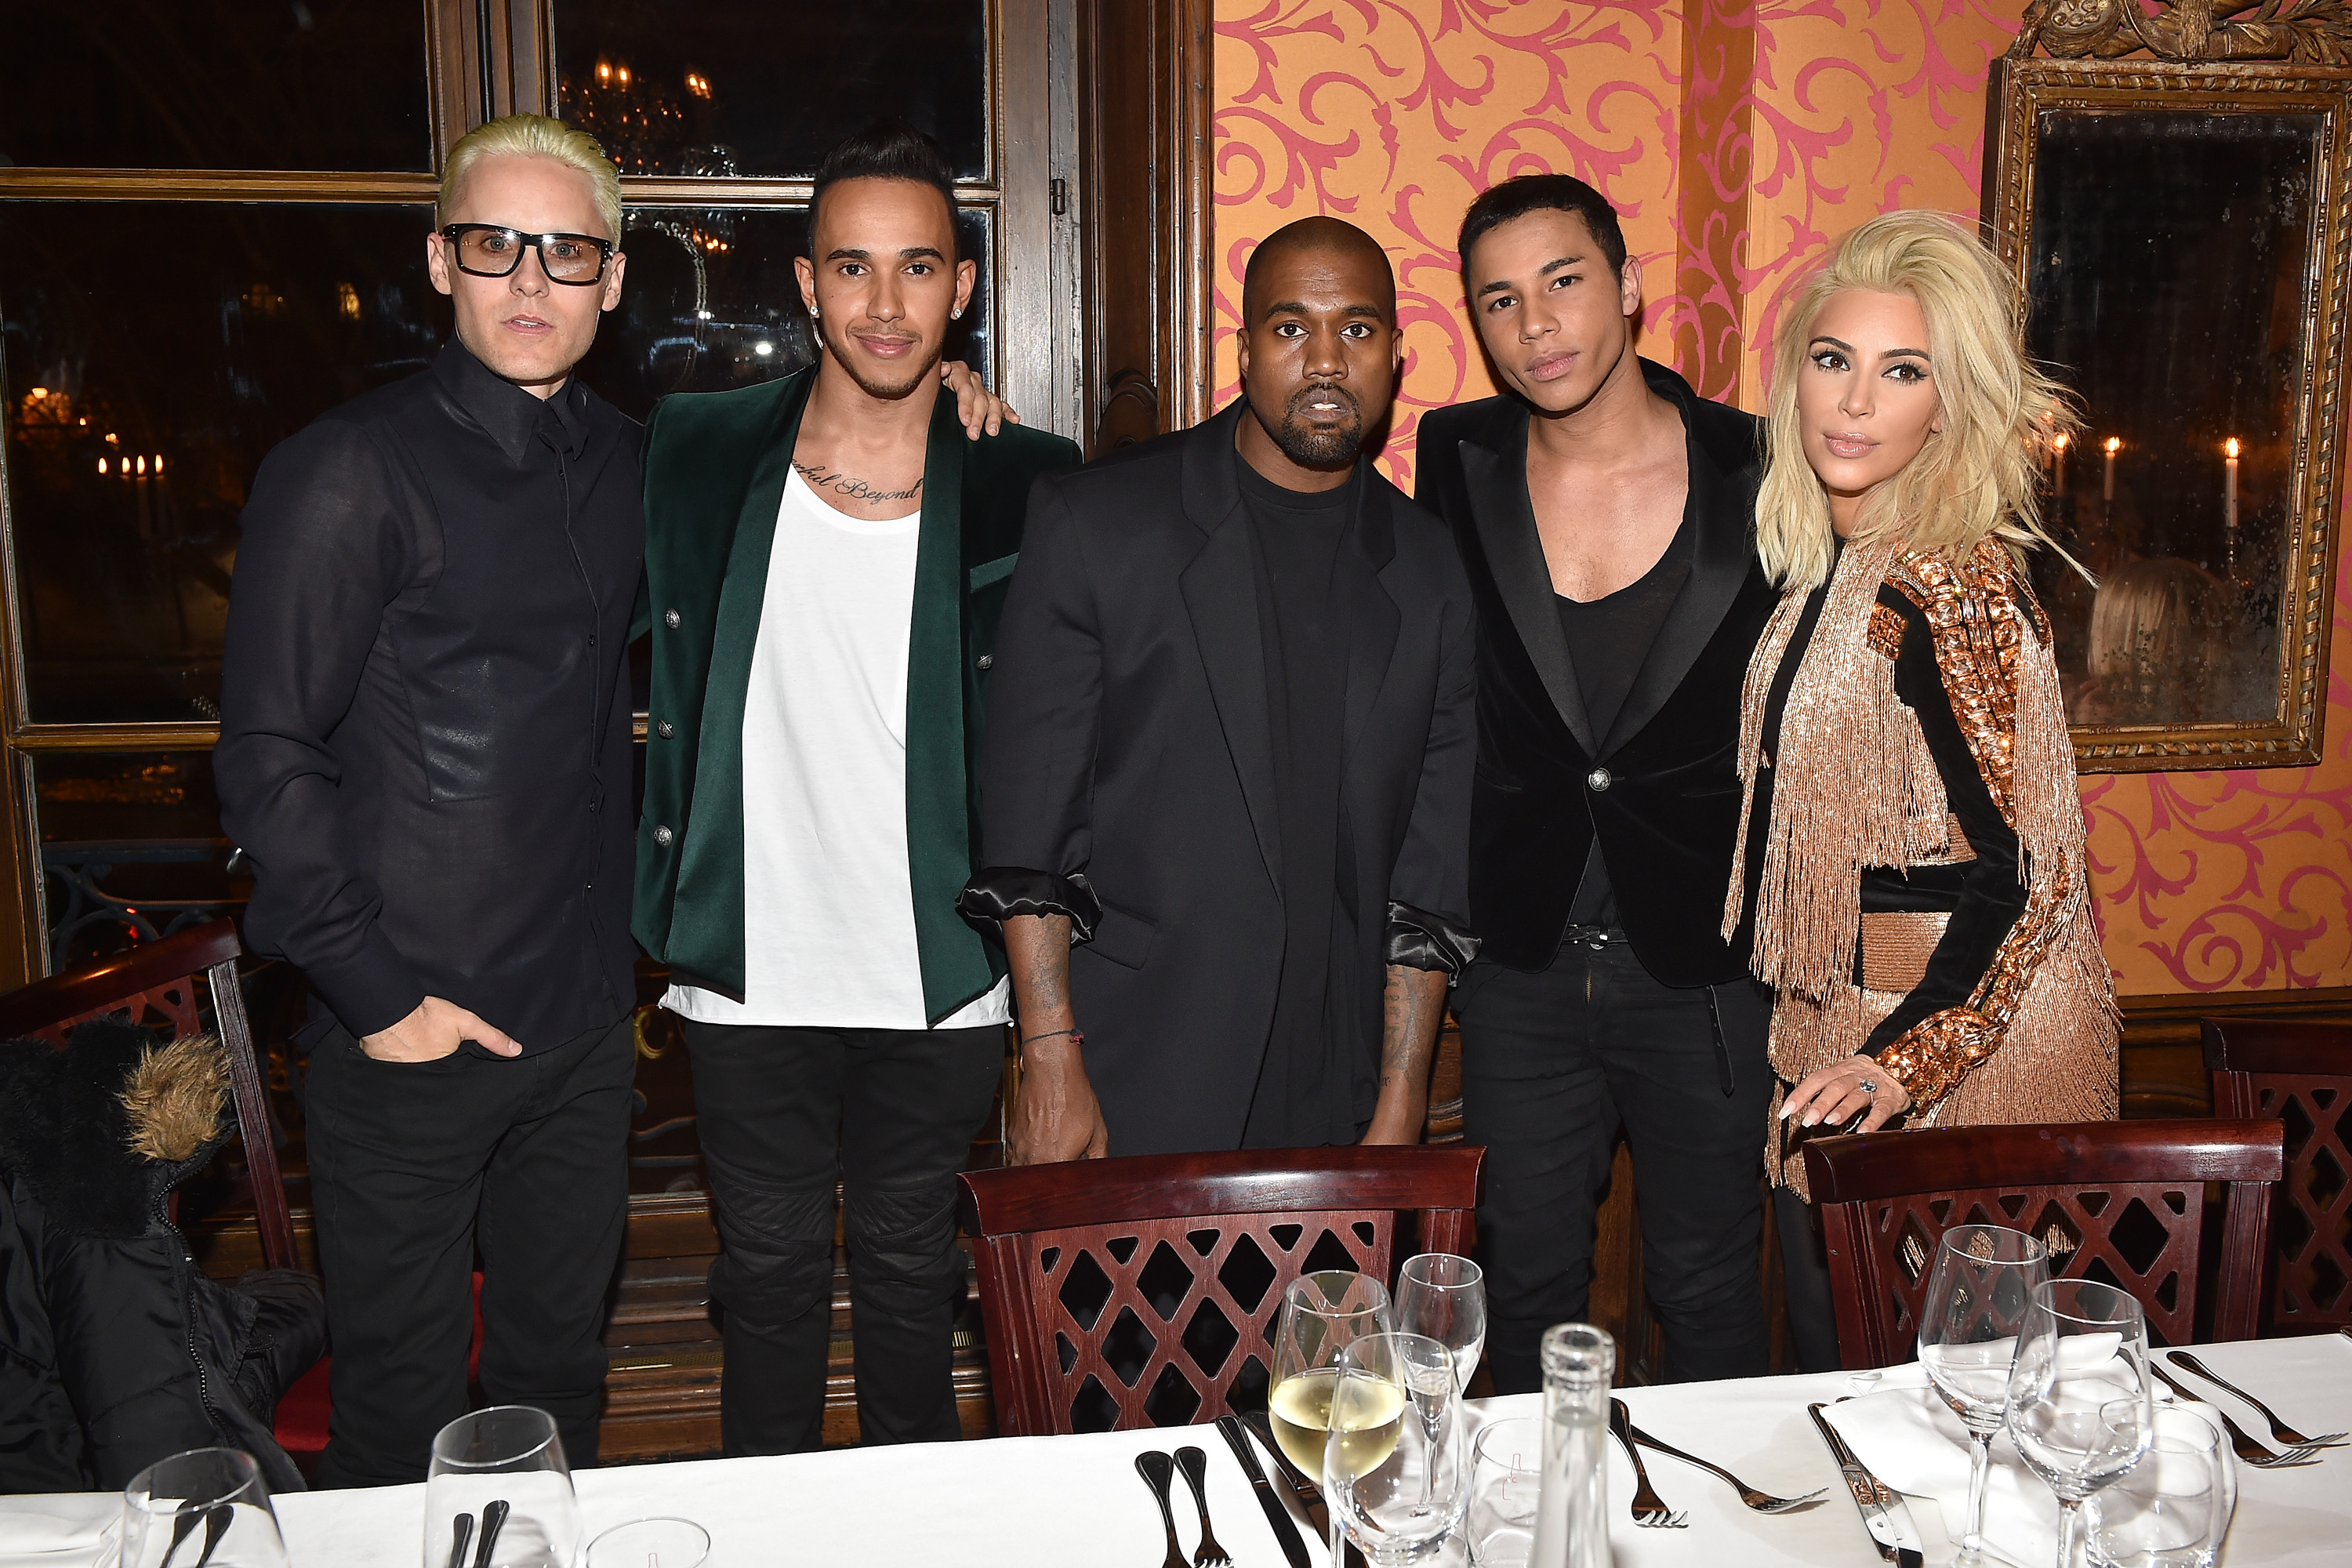 Jared Leto, Lewis Hamilton, Kanye West, Olivier Rousteing and Kim Kardashian at the Balmain After Party (Photo: Getty).